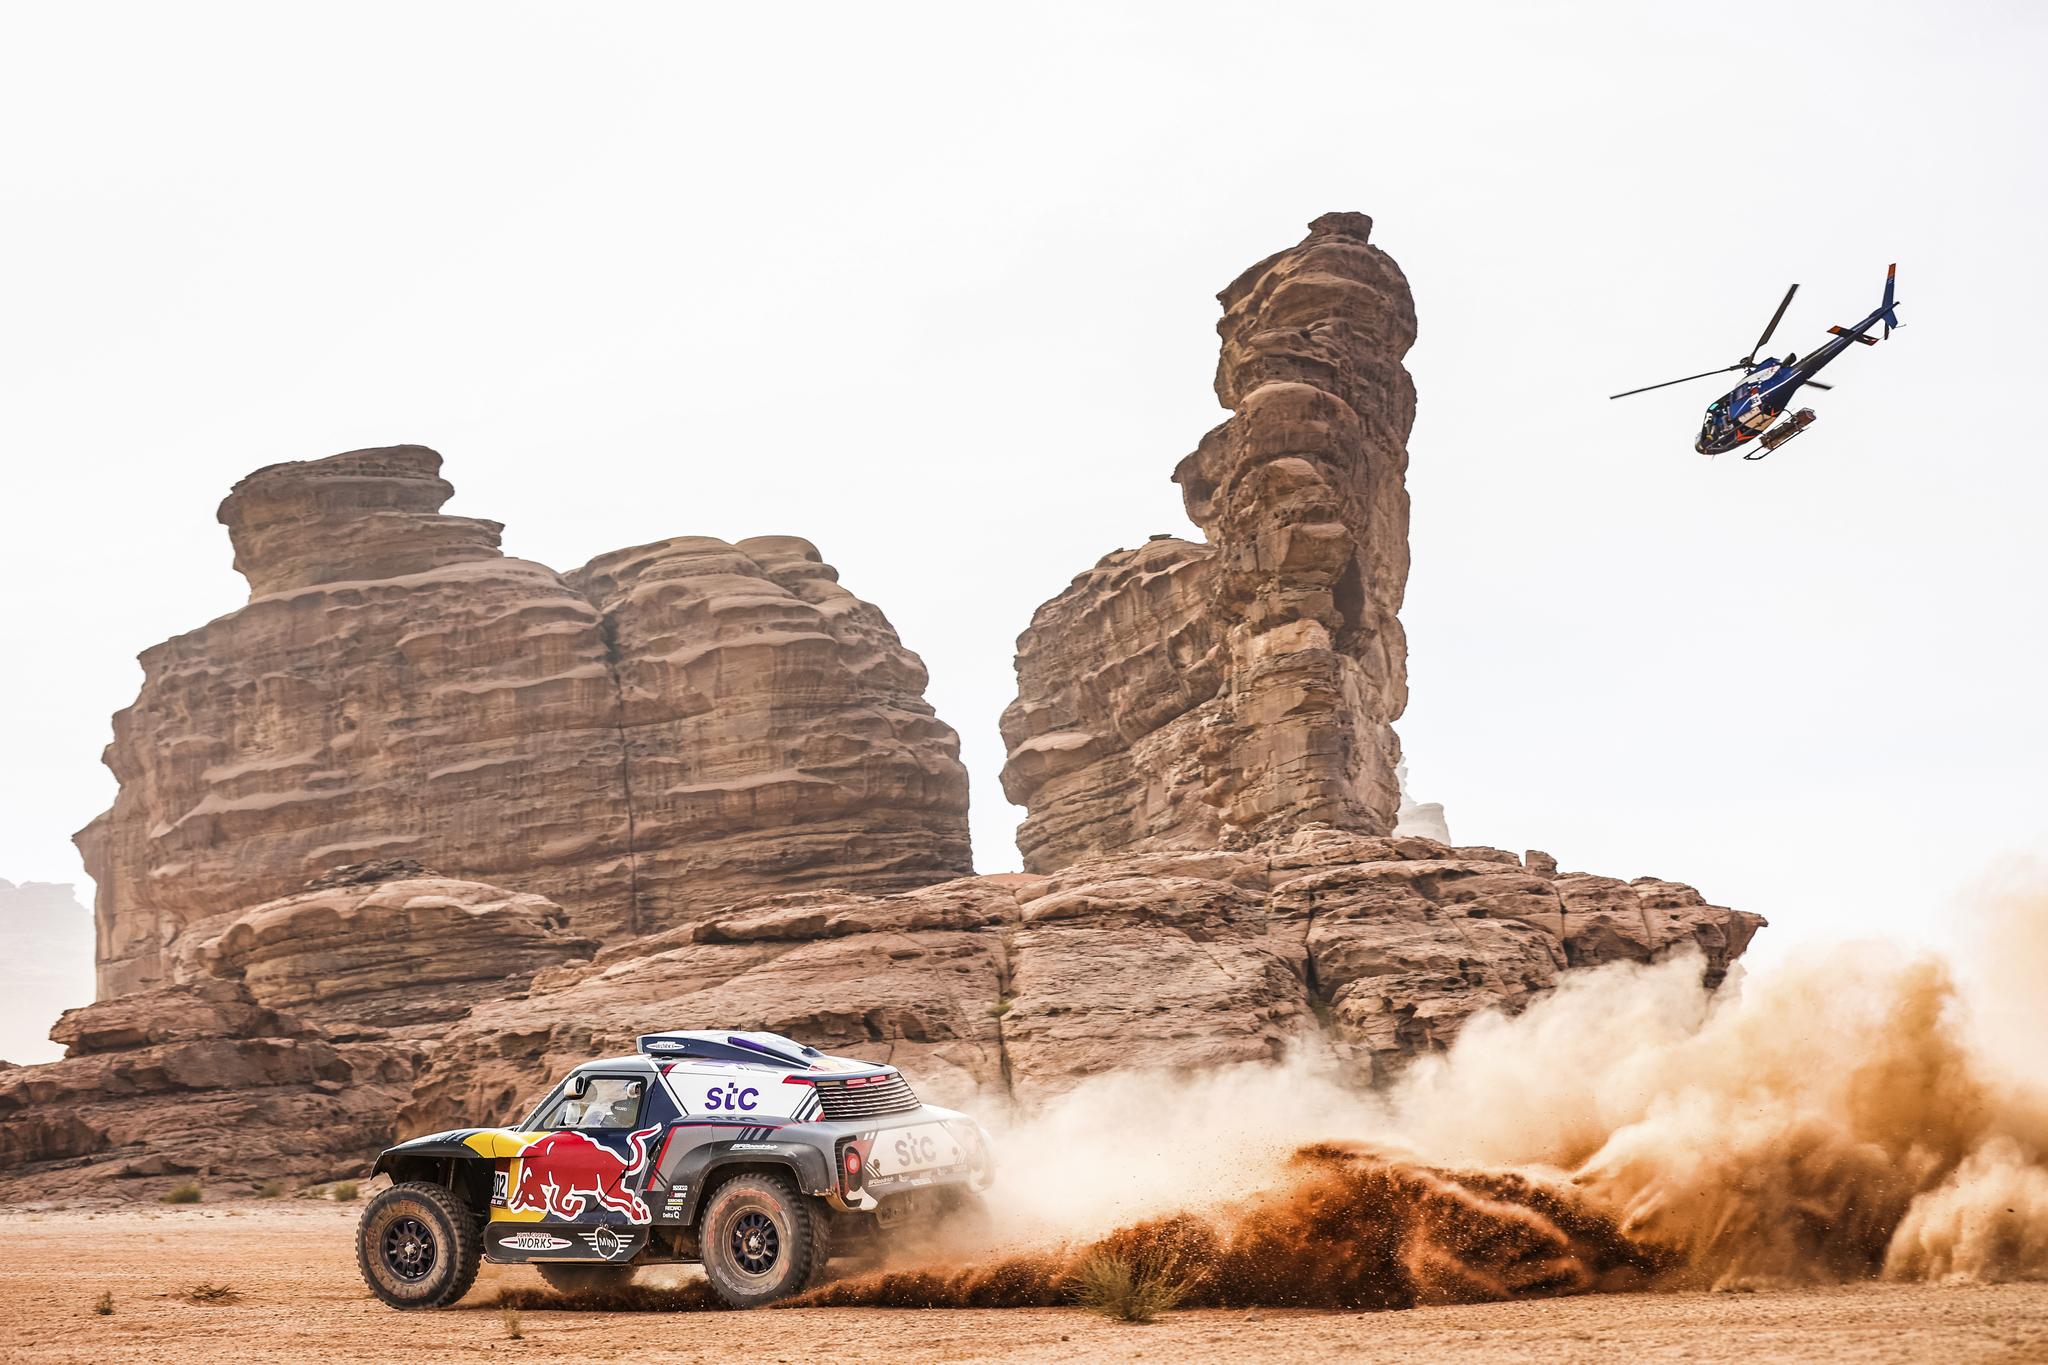 302 lt;HIT gt;Peterhansel lt;/HIT gt; Stephane (fra), Boulanger Edouard (fra), Mini, X-Raid Mini JCQ Team, Auto, action during the 10th stage of the Dakar 2021 between Neom and Al-Ula, in Saudi Arabia on January 13, 2021 - Photo Antonin Vincent / DPPI